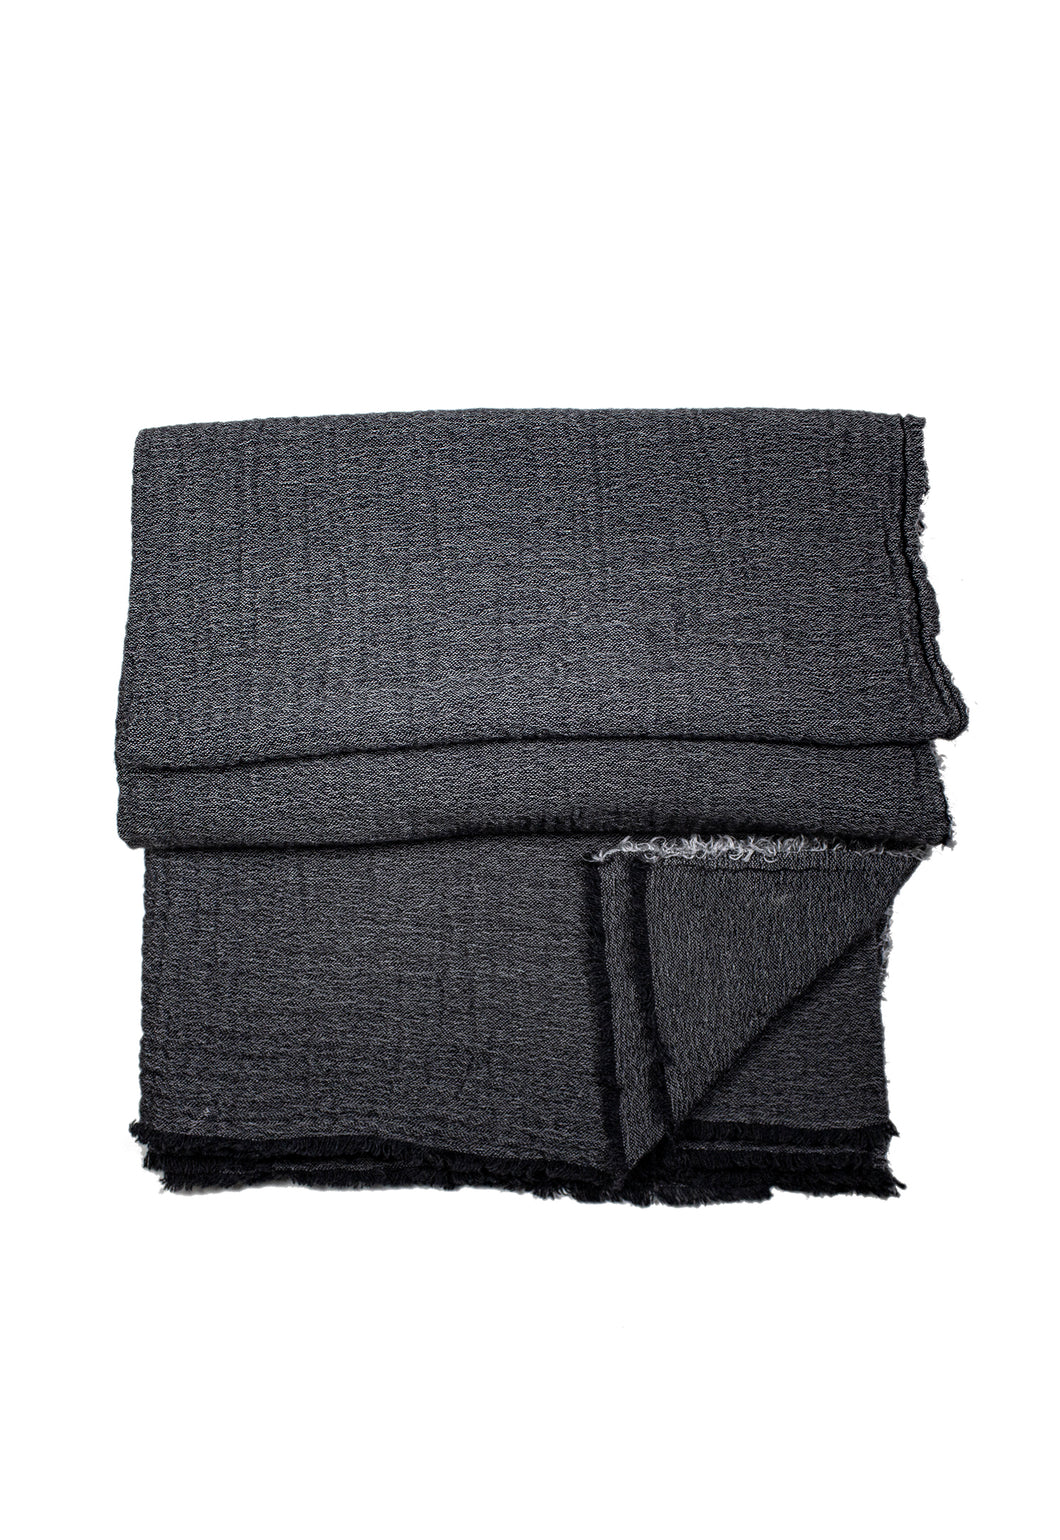 Charcoal Sutton Cashmere Throw